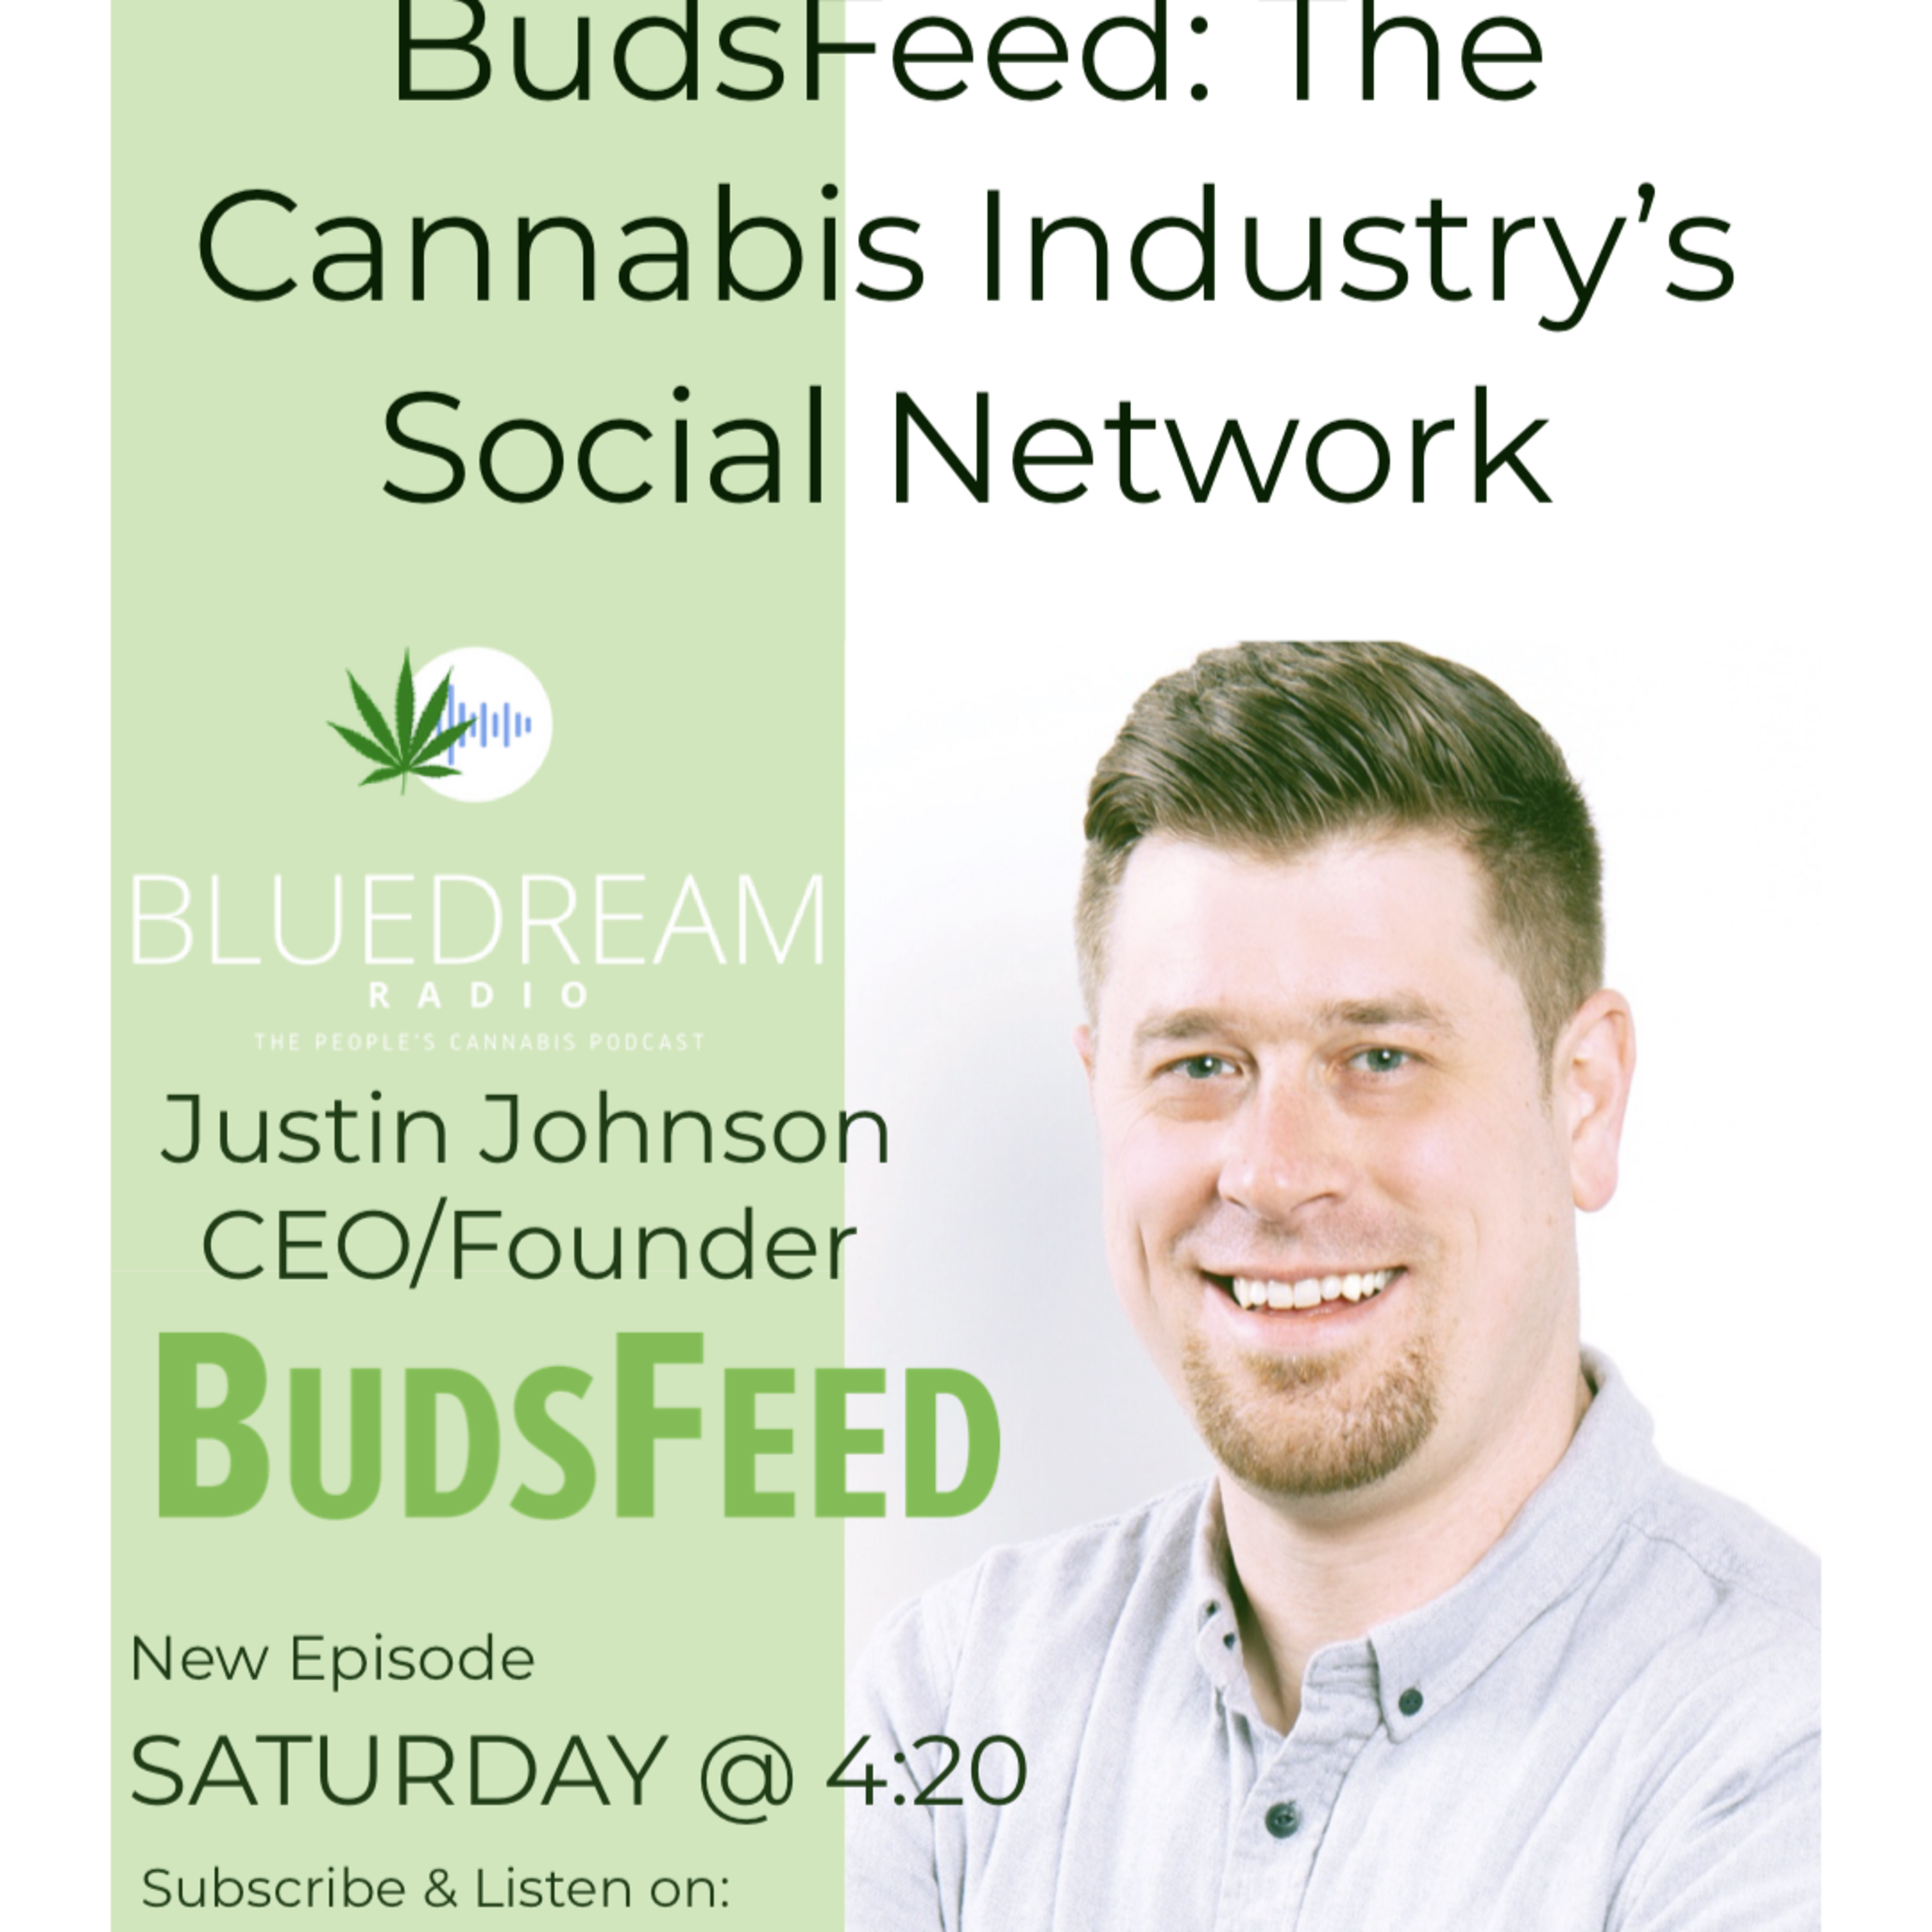 BudsFeed: The Cannabis Industry's Social Network w/ Justin Johnson CEO/FOUNDER BudsFeed